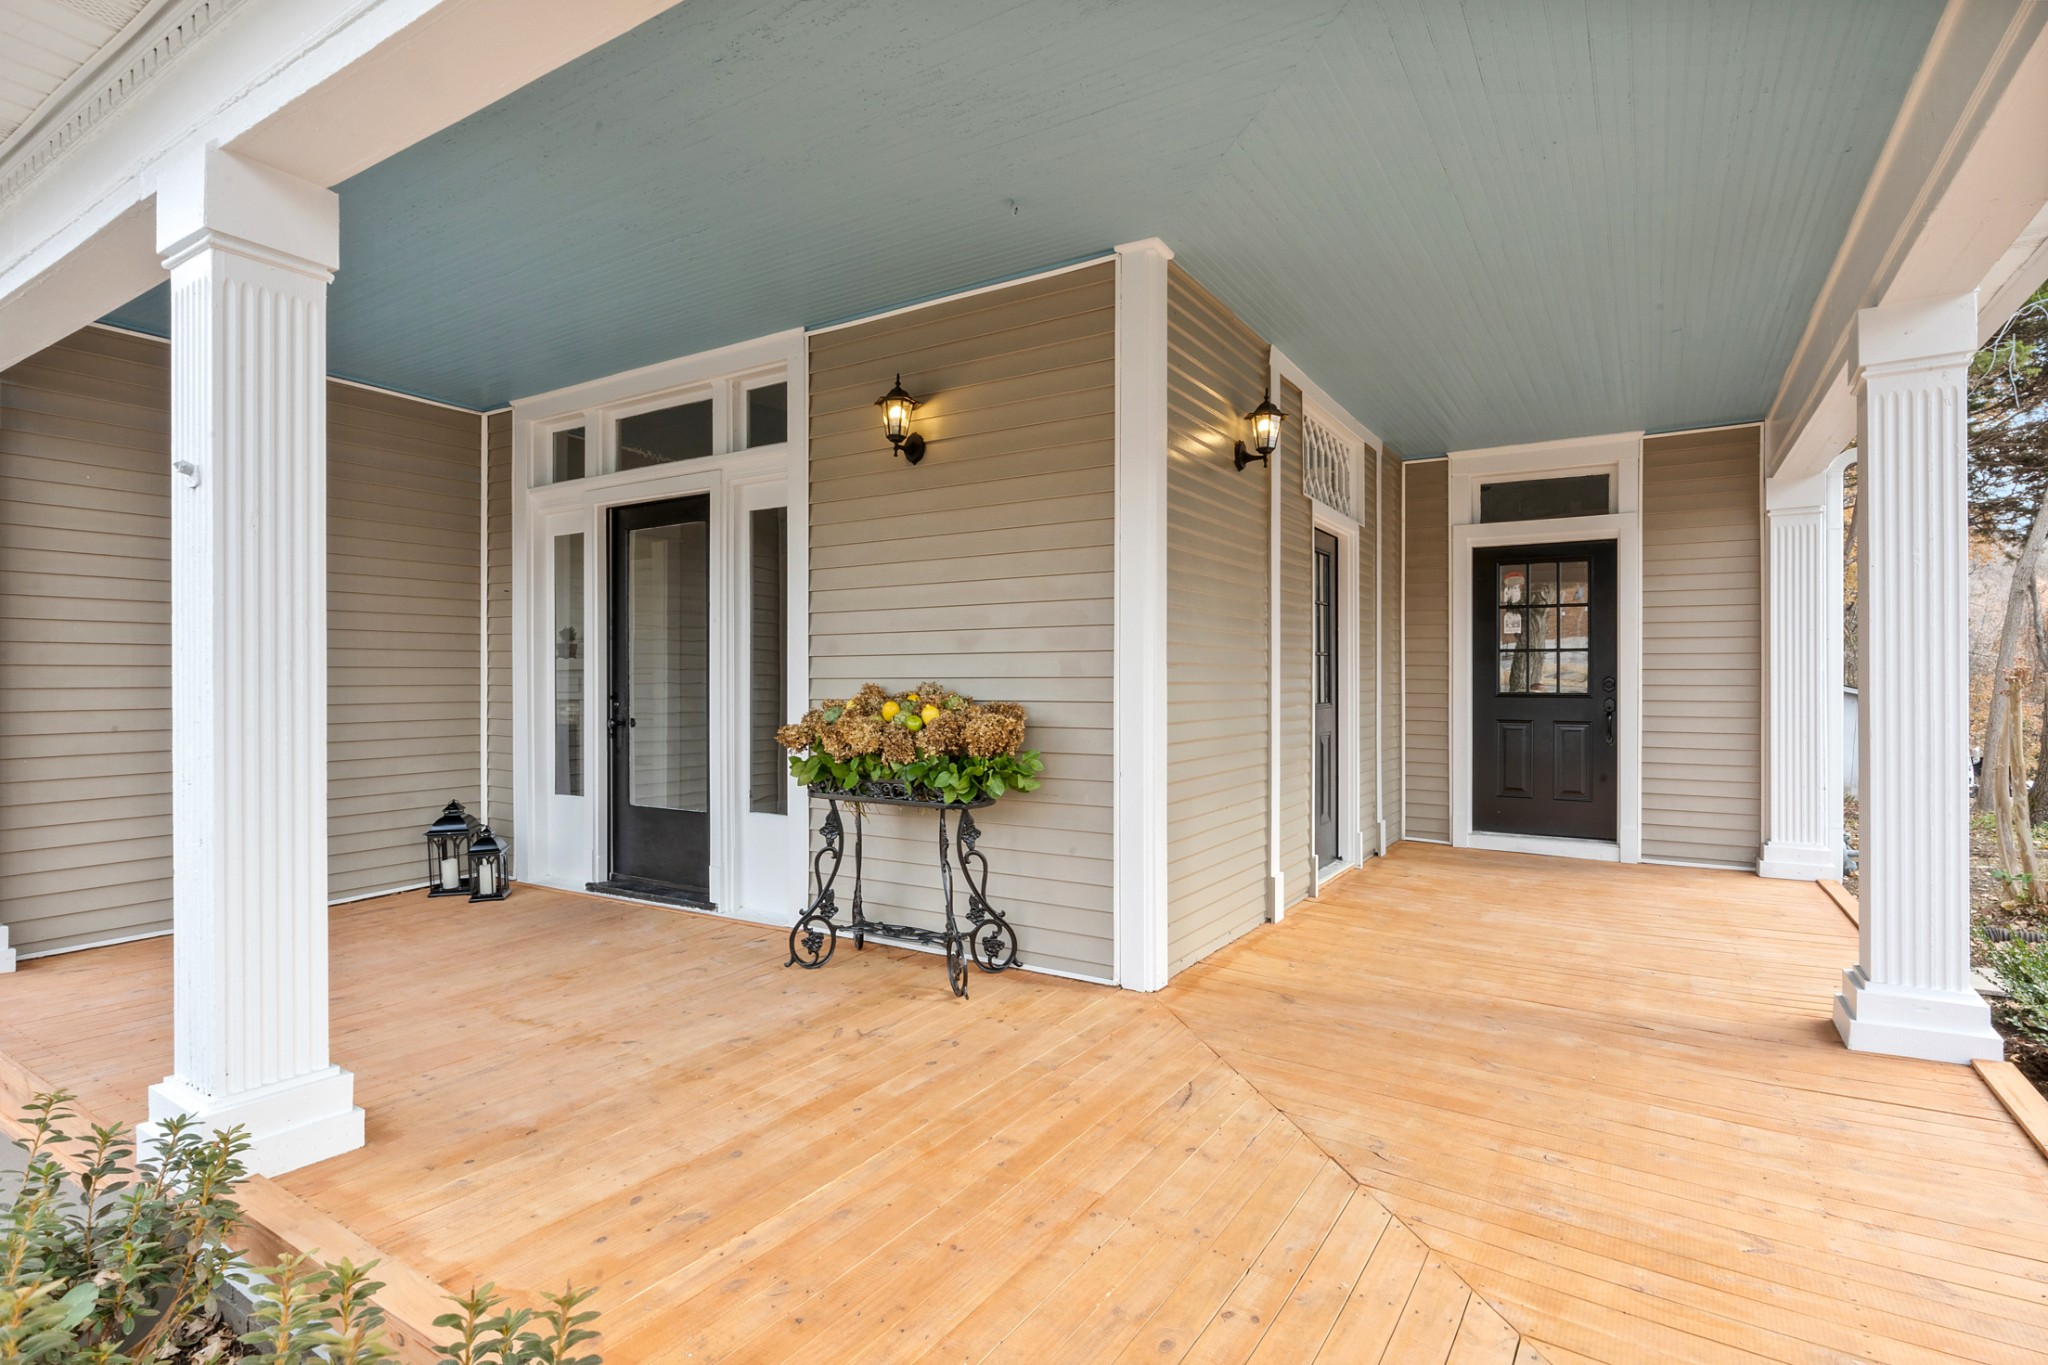 314 Willow St, Springfield, TN 37172 - Springfield, TN real estate listing